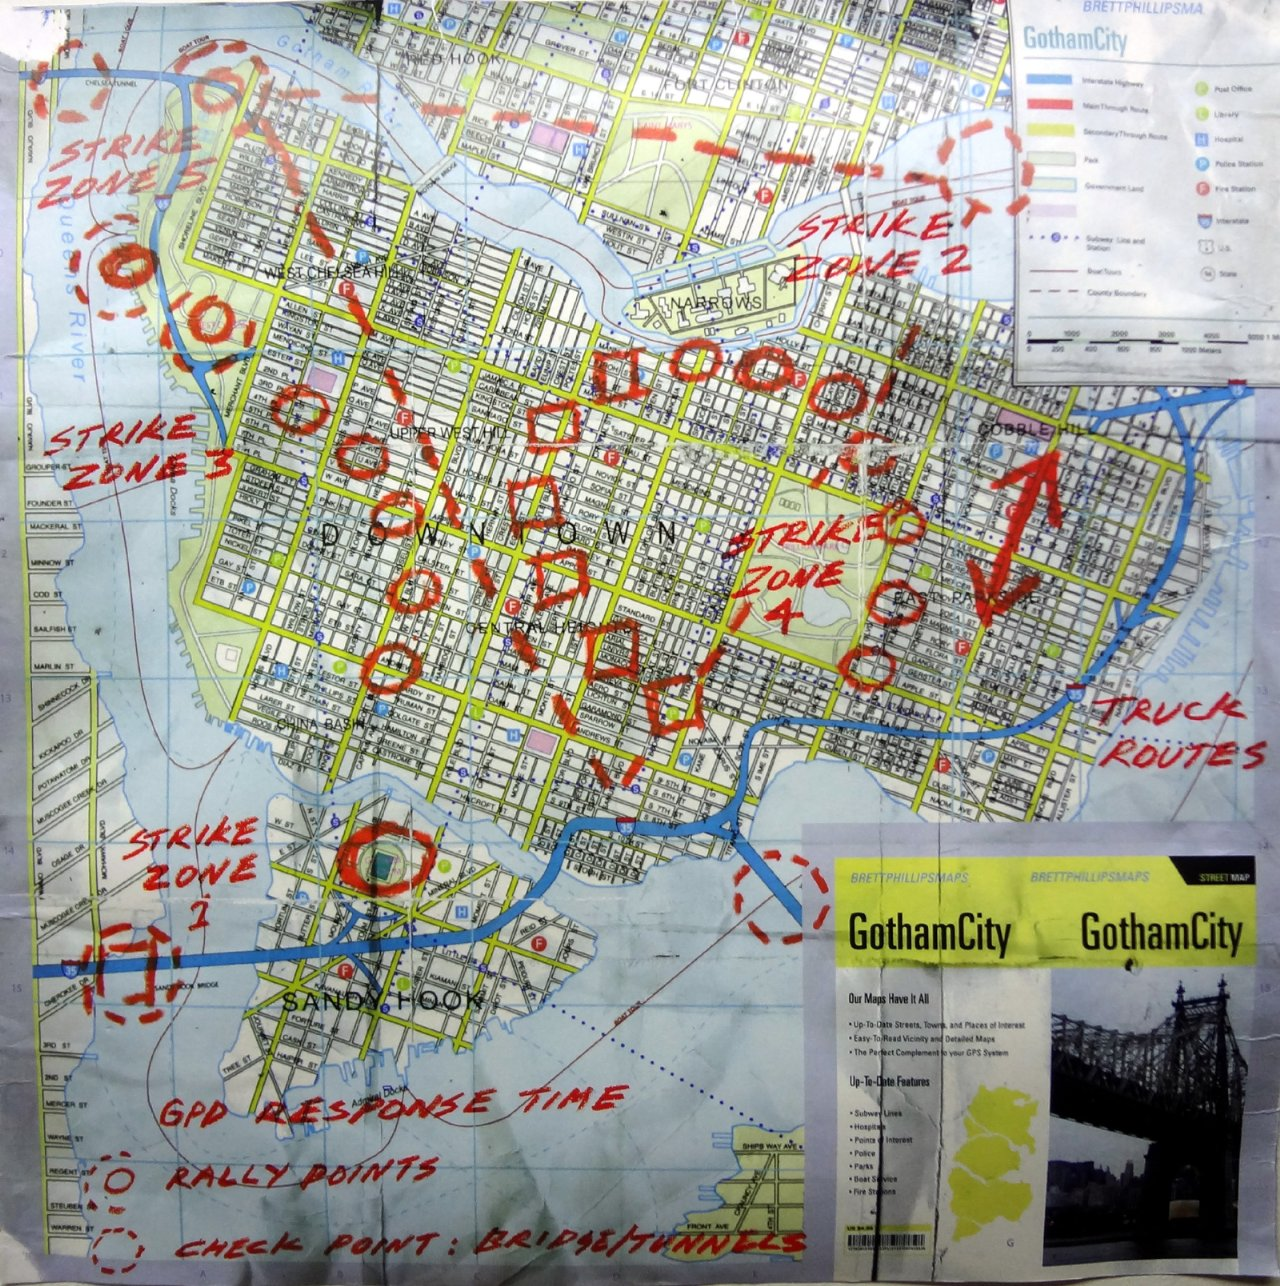 http://batmangothamcity.net/wp-content/uploads/2012/04/Gotham-map-Dark-Knight-Rises.jpg